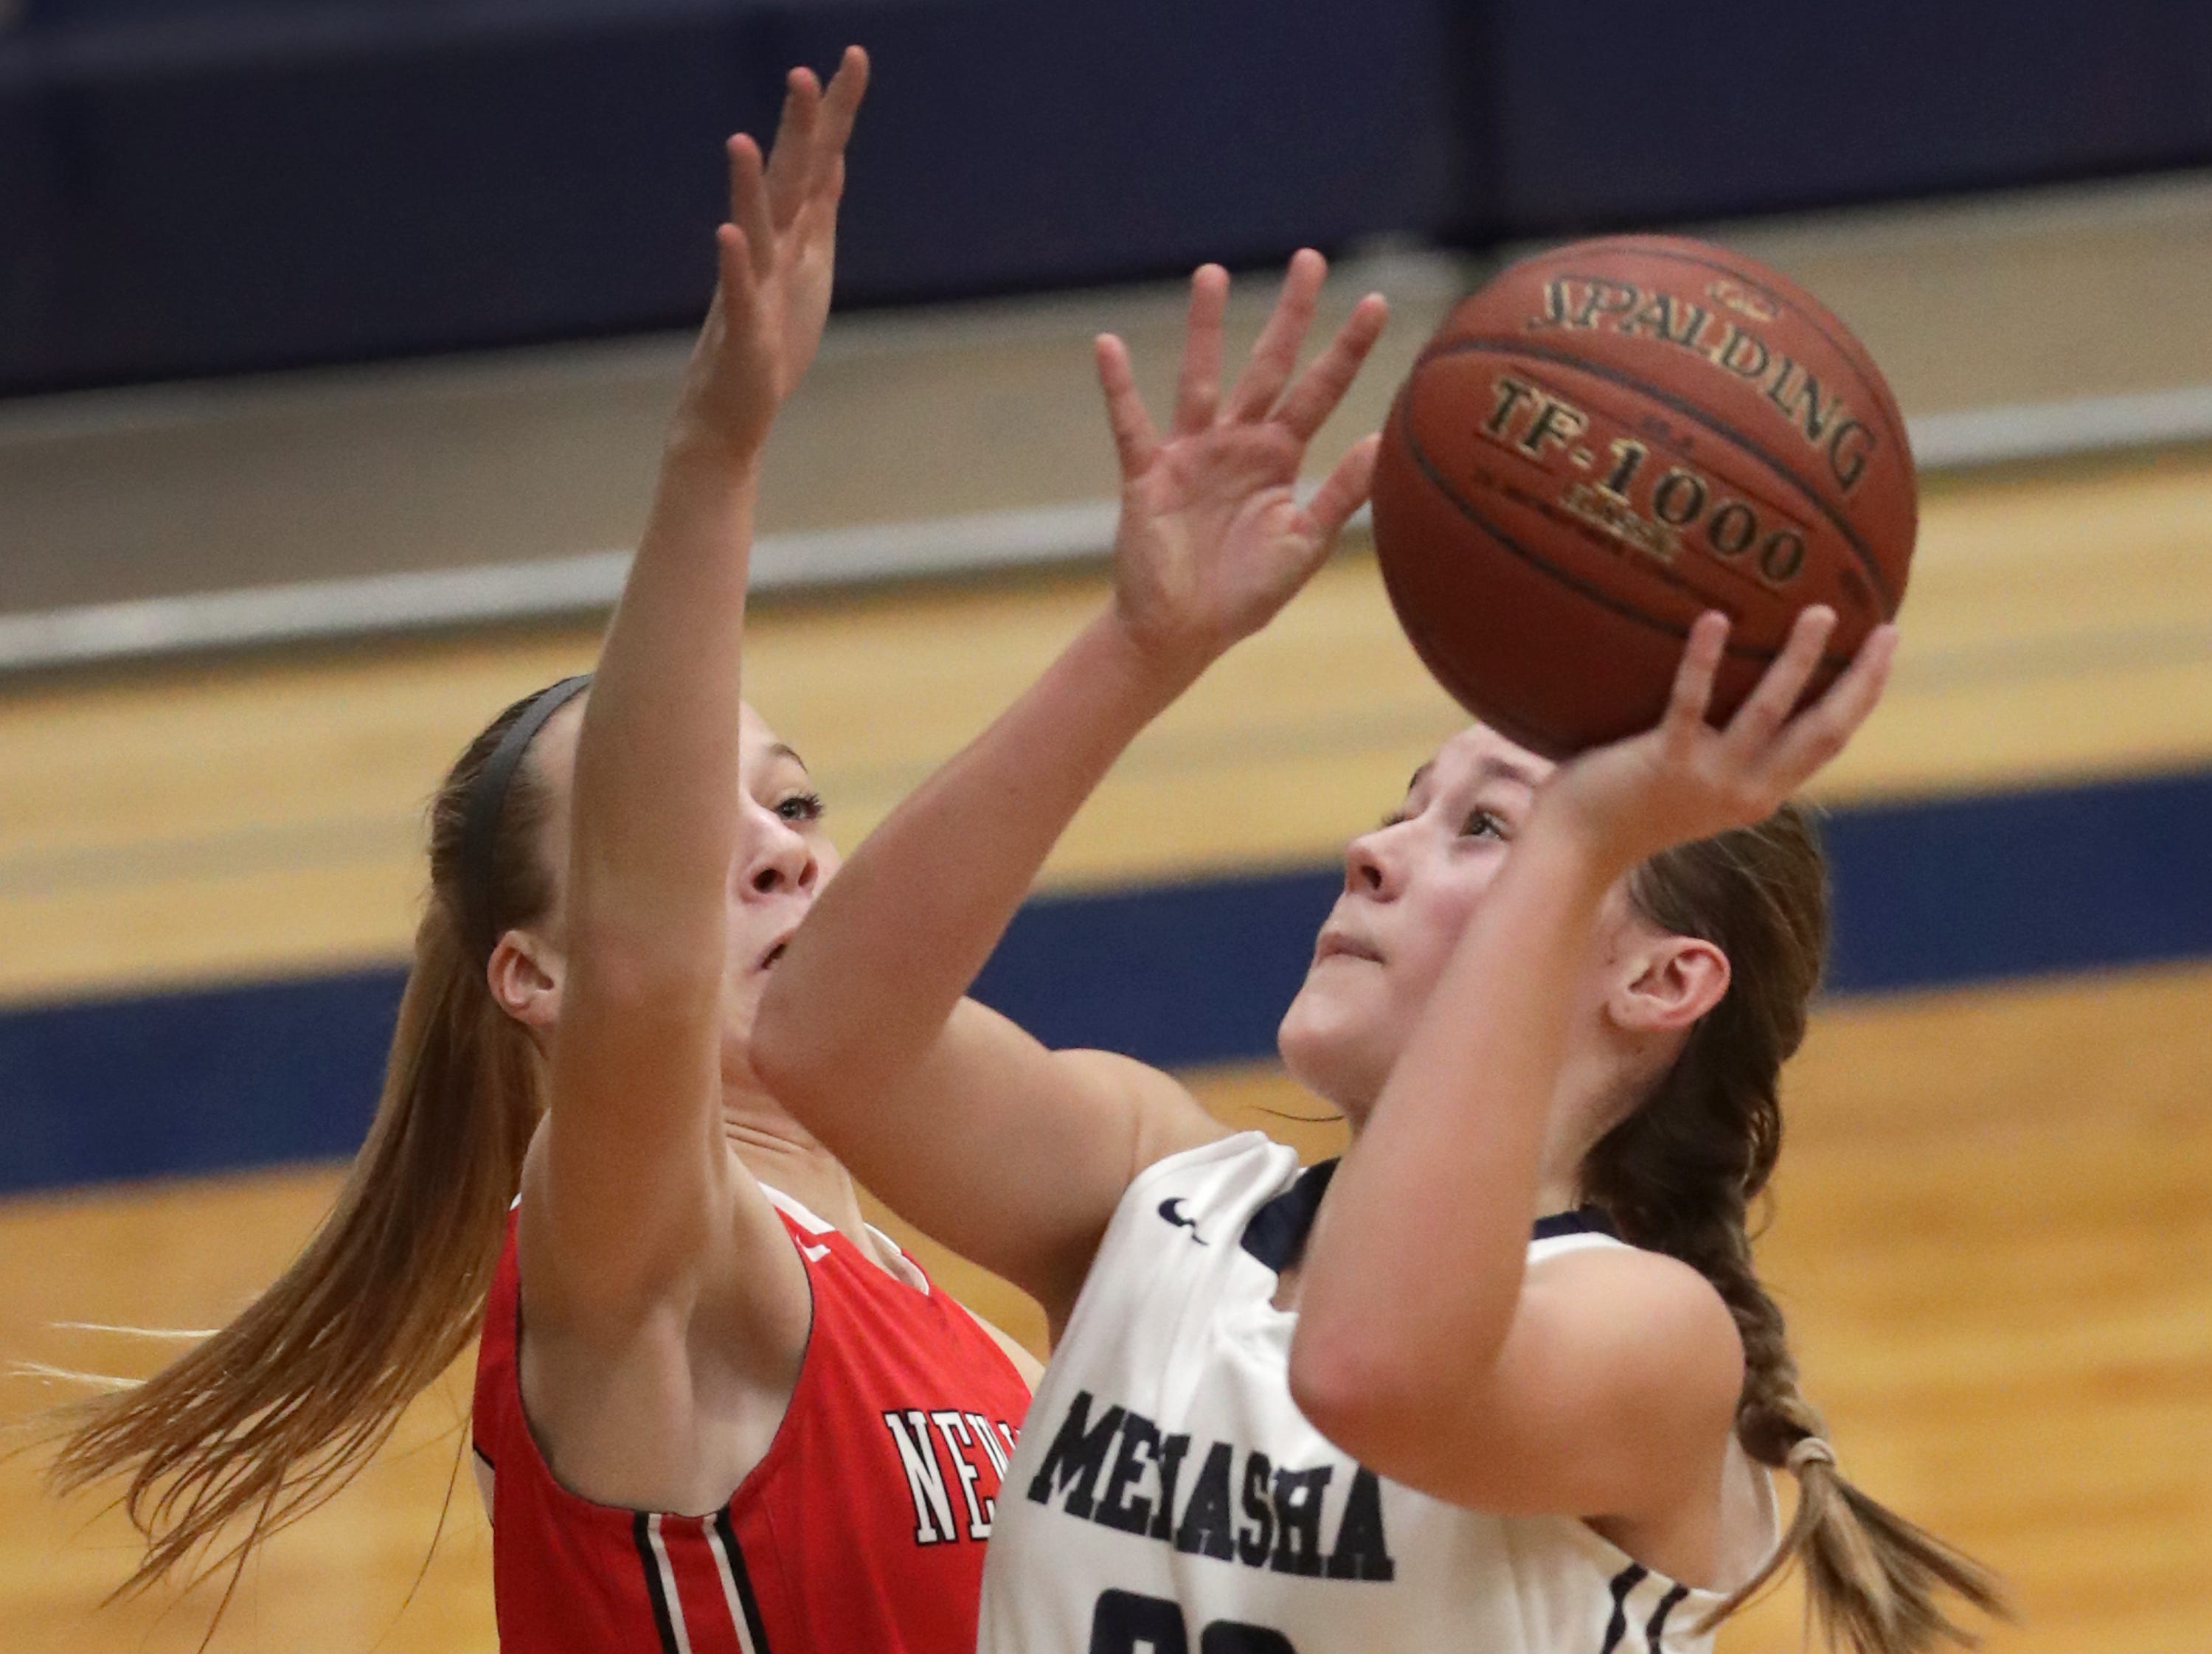 New London High School's #11 Megan Pankow against Menasha High School's #32 Leah Johnson during their girls basketball game on Friday, December 14, 2018, in Menasha, Wis.